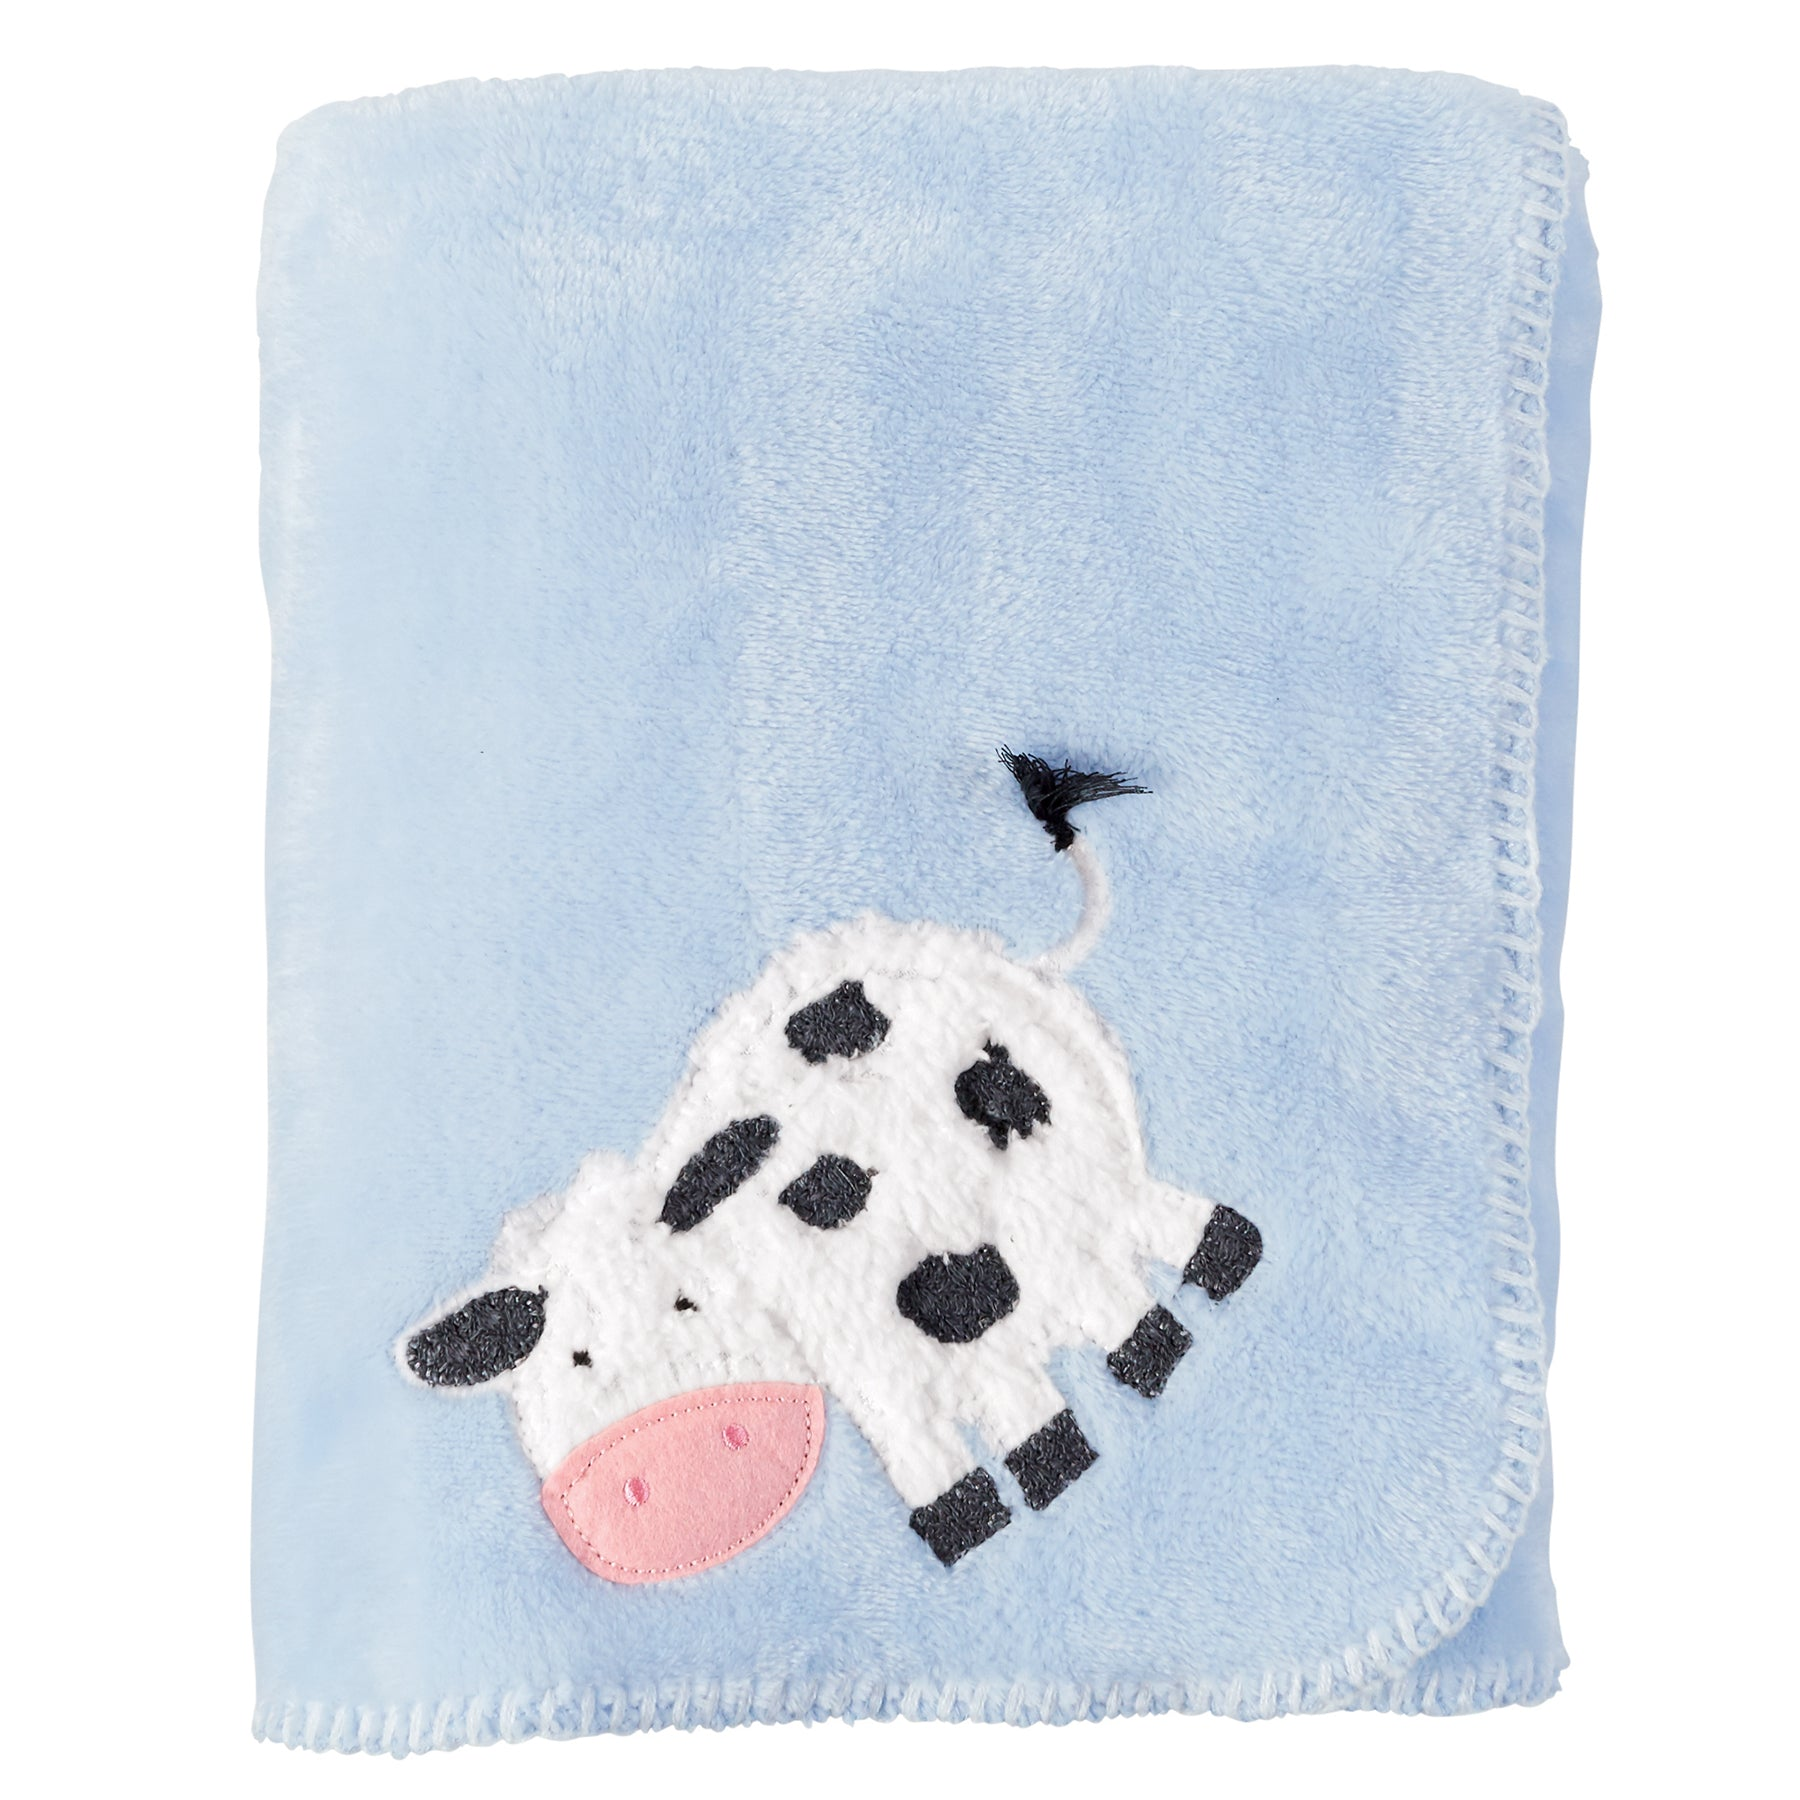 Mud-Pie Cow Fleece Blanket